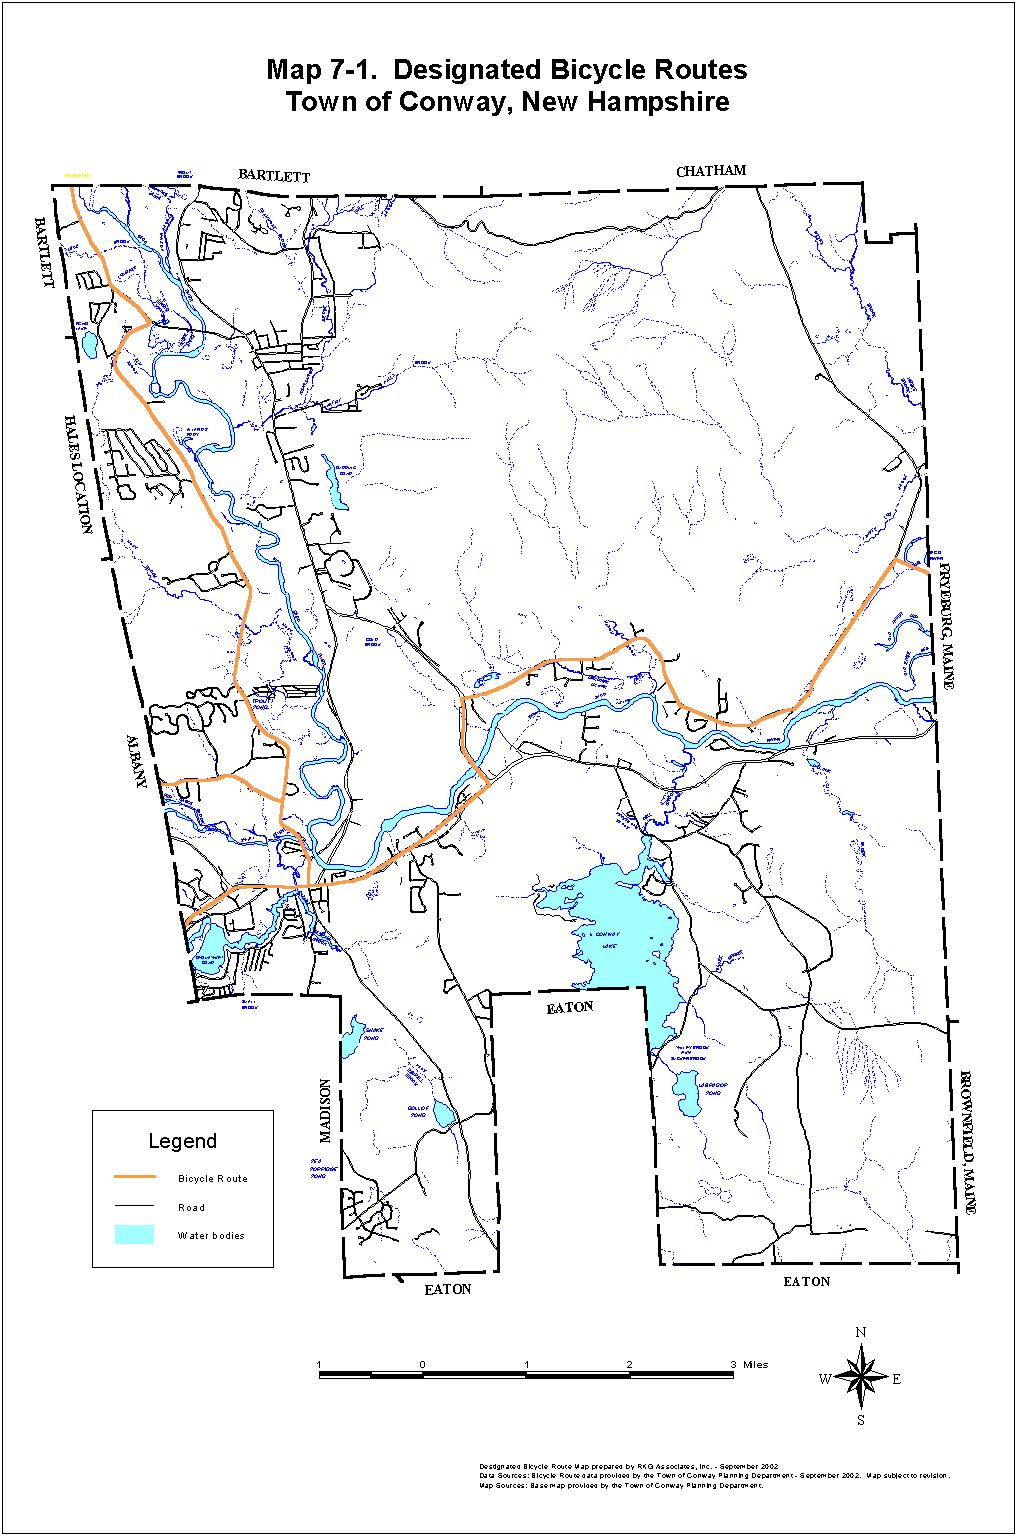 map 7-1 bicycle routes Map Of Towns Near North Conway Nh on coos county nh town map, alton nh town map, new boston nh town map, gorham nh town map, pelham nh town map, carroll county nh town map, gilmanton nh town map, newton nh town map, peterborough nh town map,